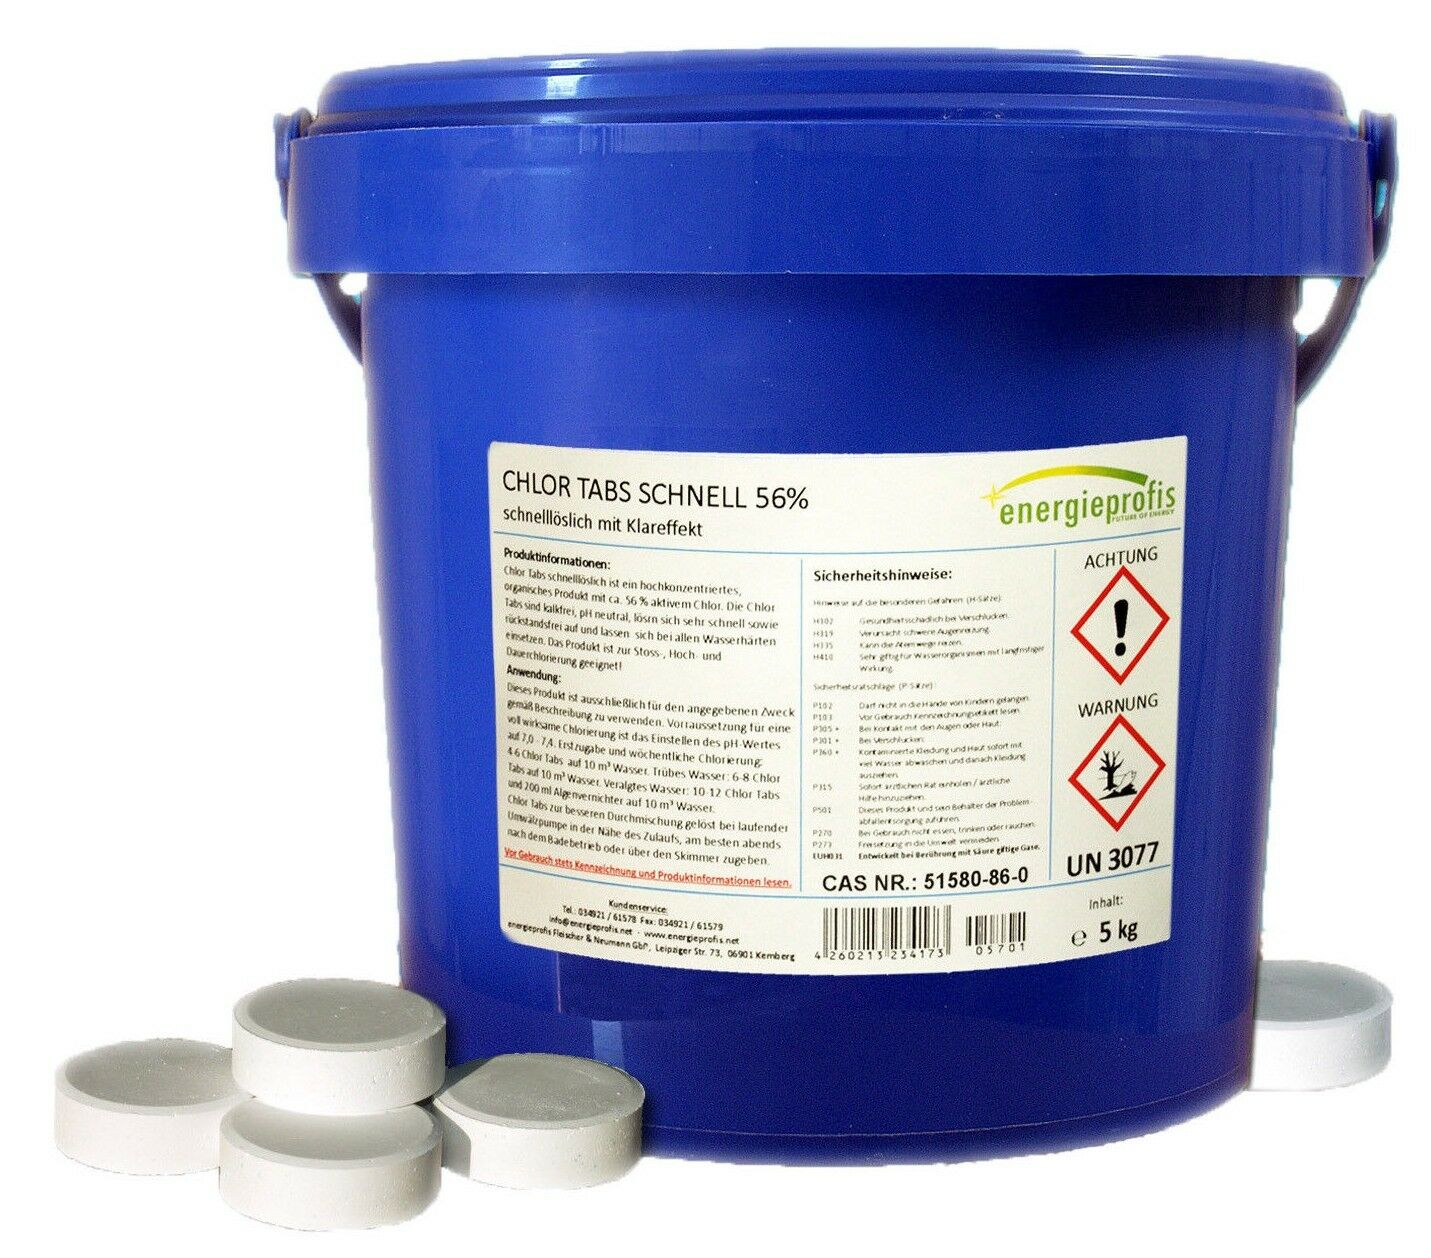 Pool Pflege Chlor 5 Kg Chlortabs 20g Schnell Chlor Tabletten Desinfektion Pool Schock